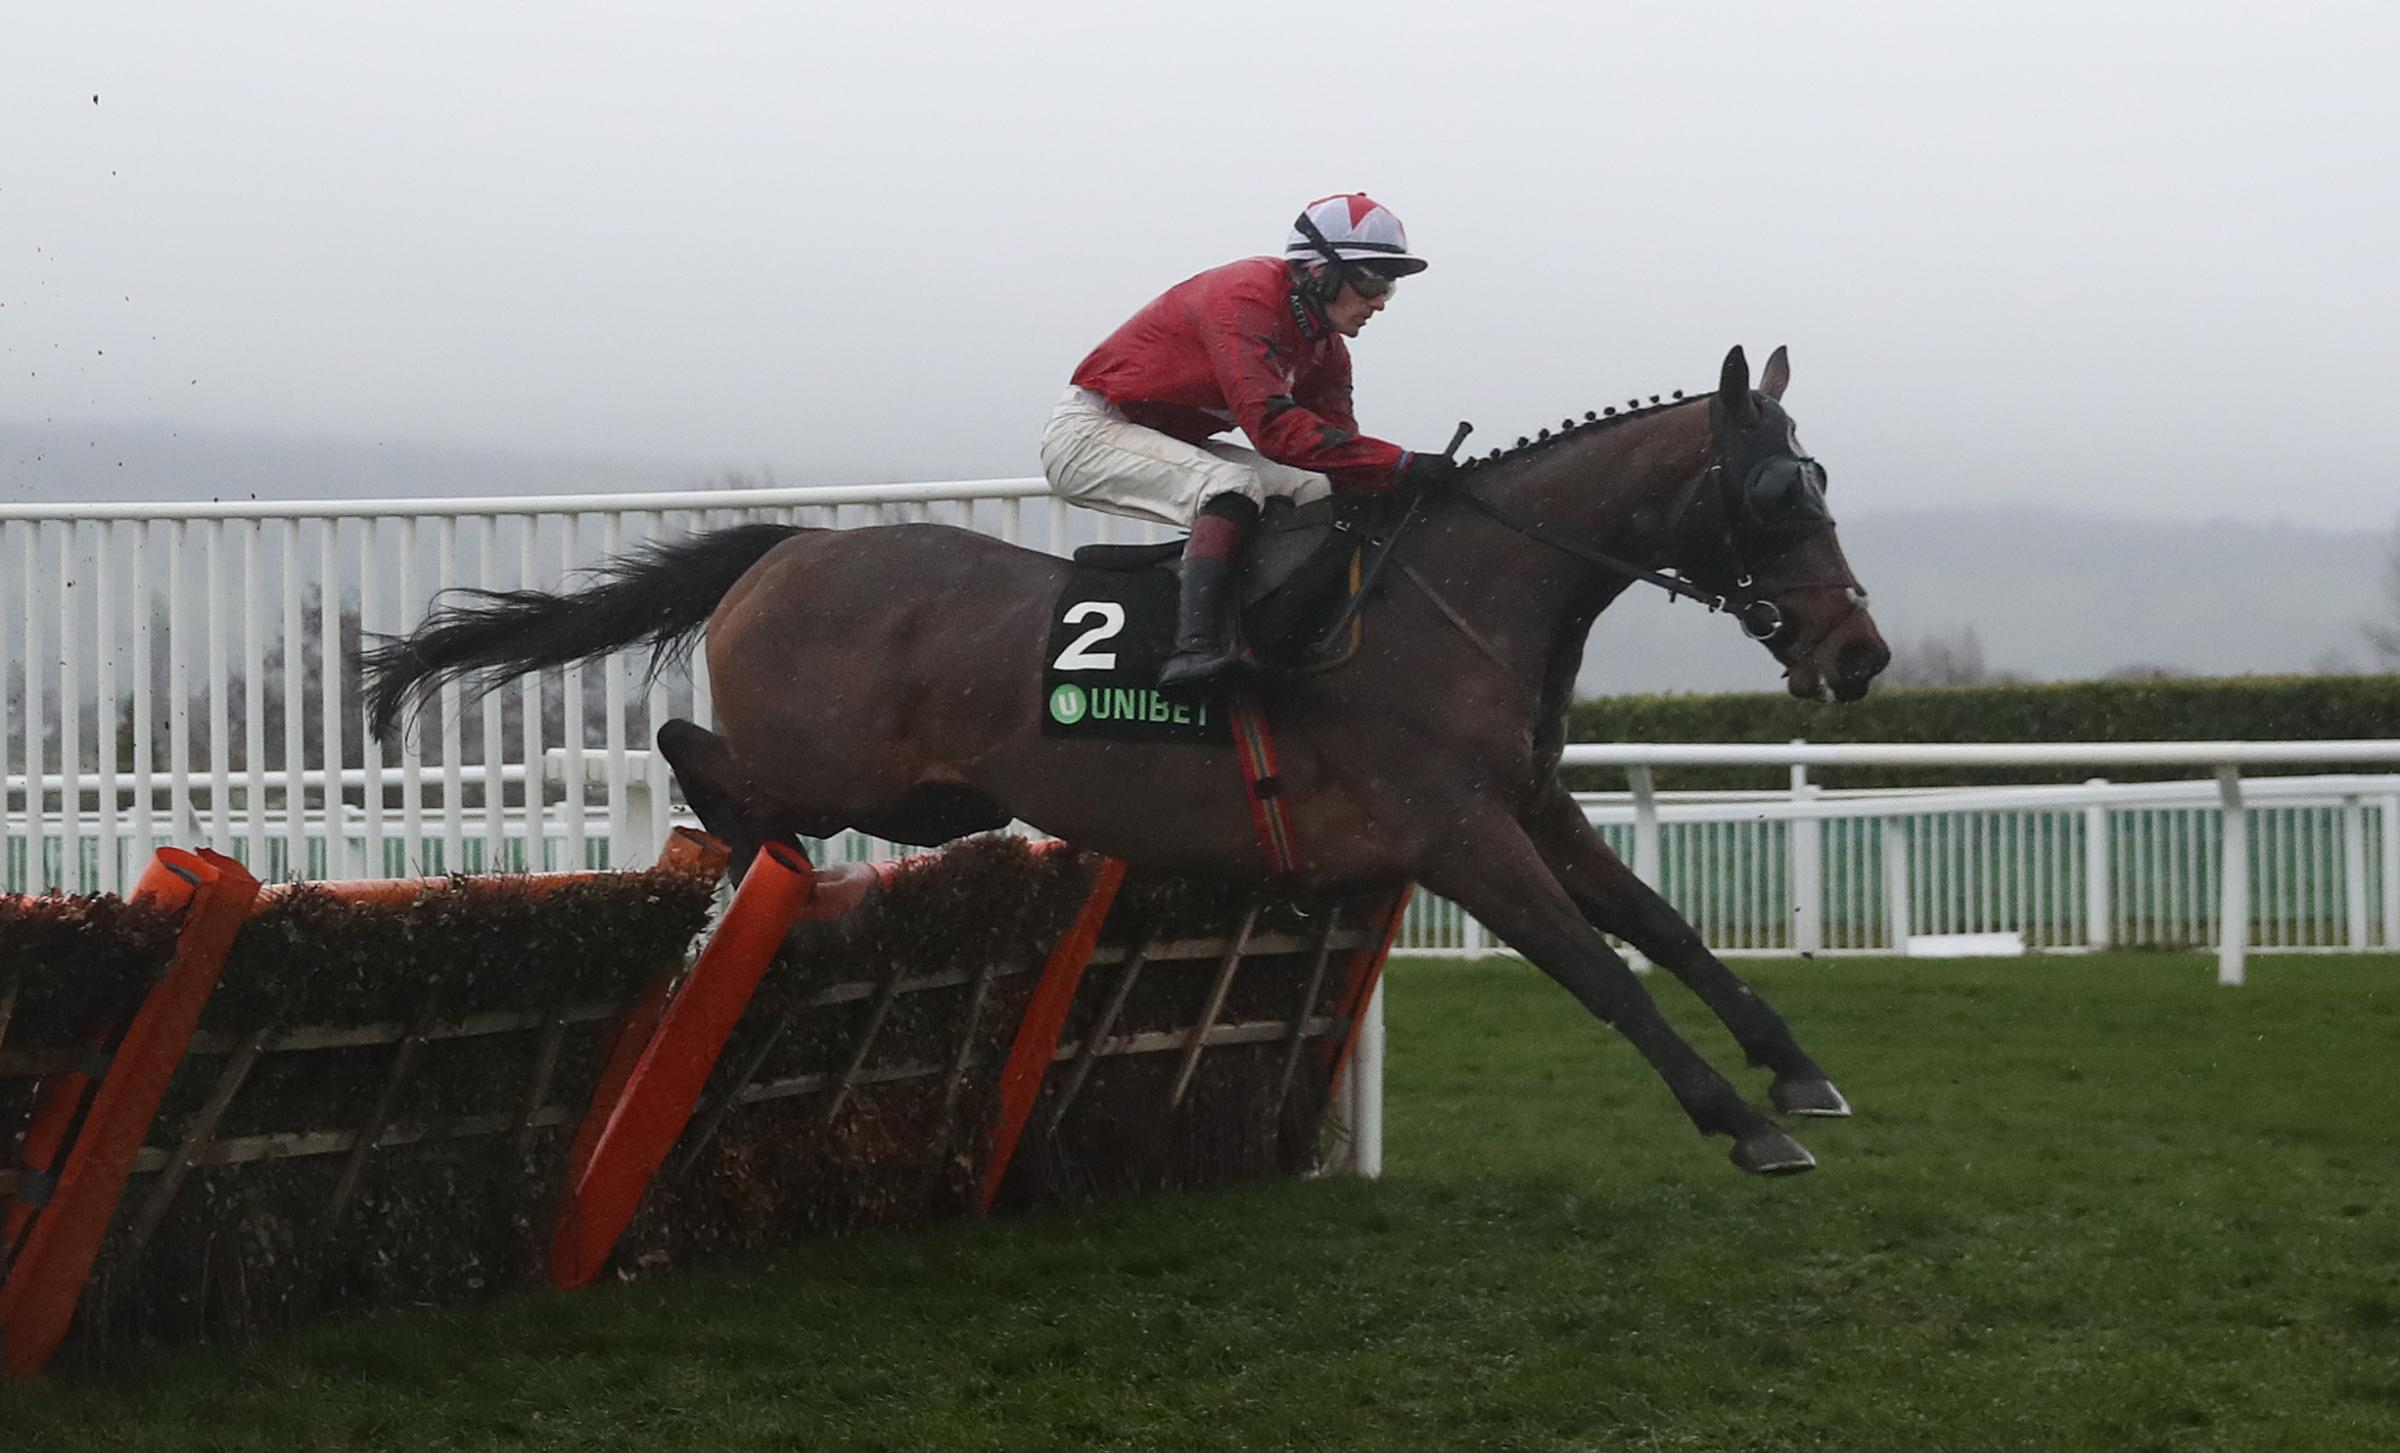 The New One ridden by Sam Twiston-Davies at Cheltenham in what turned out to be the retiring Cotswold horse's final race. Picture: DAVID DAVIES/PA WIRE